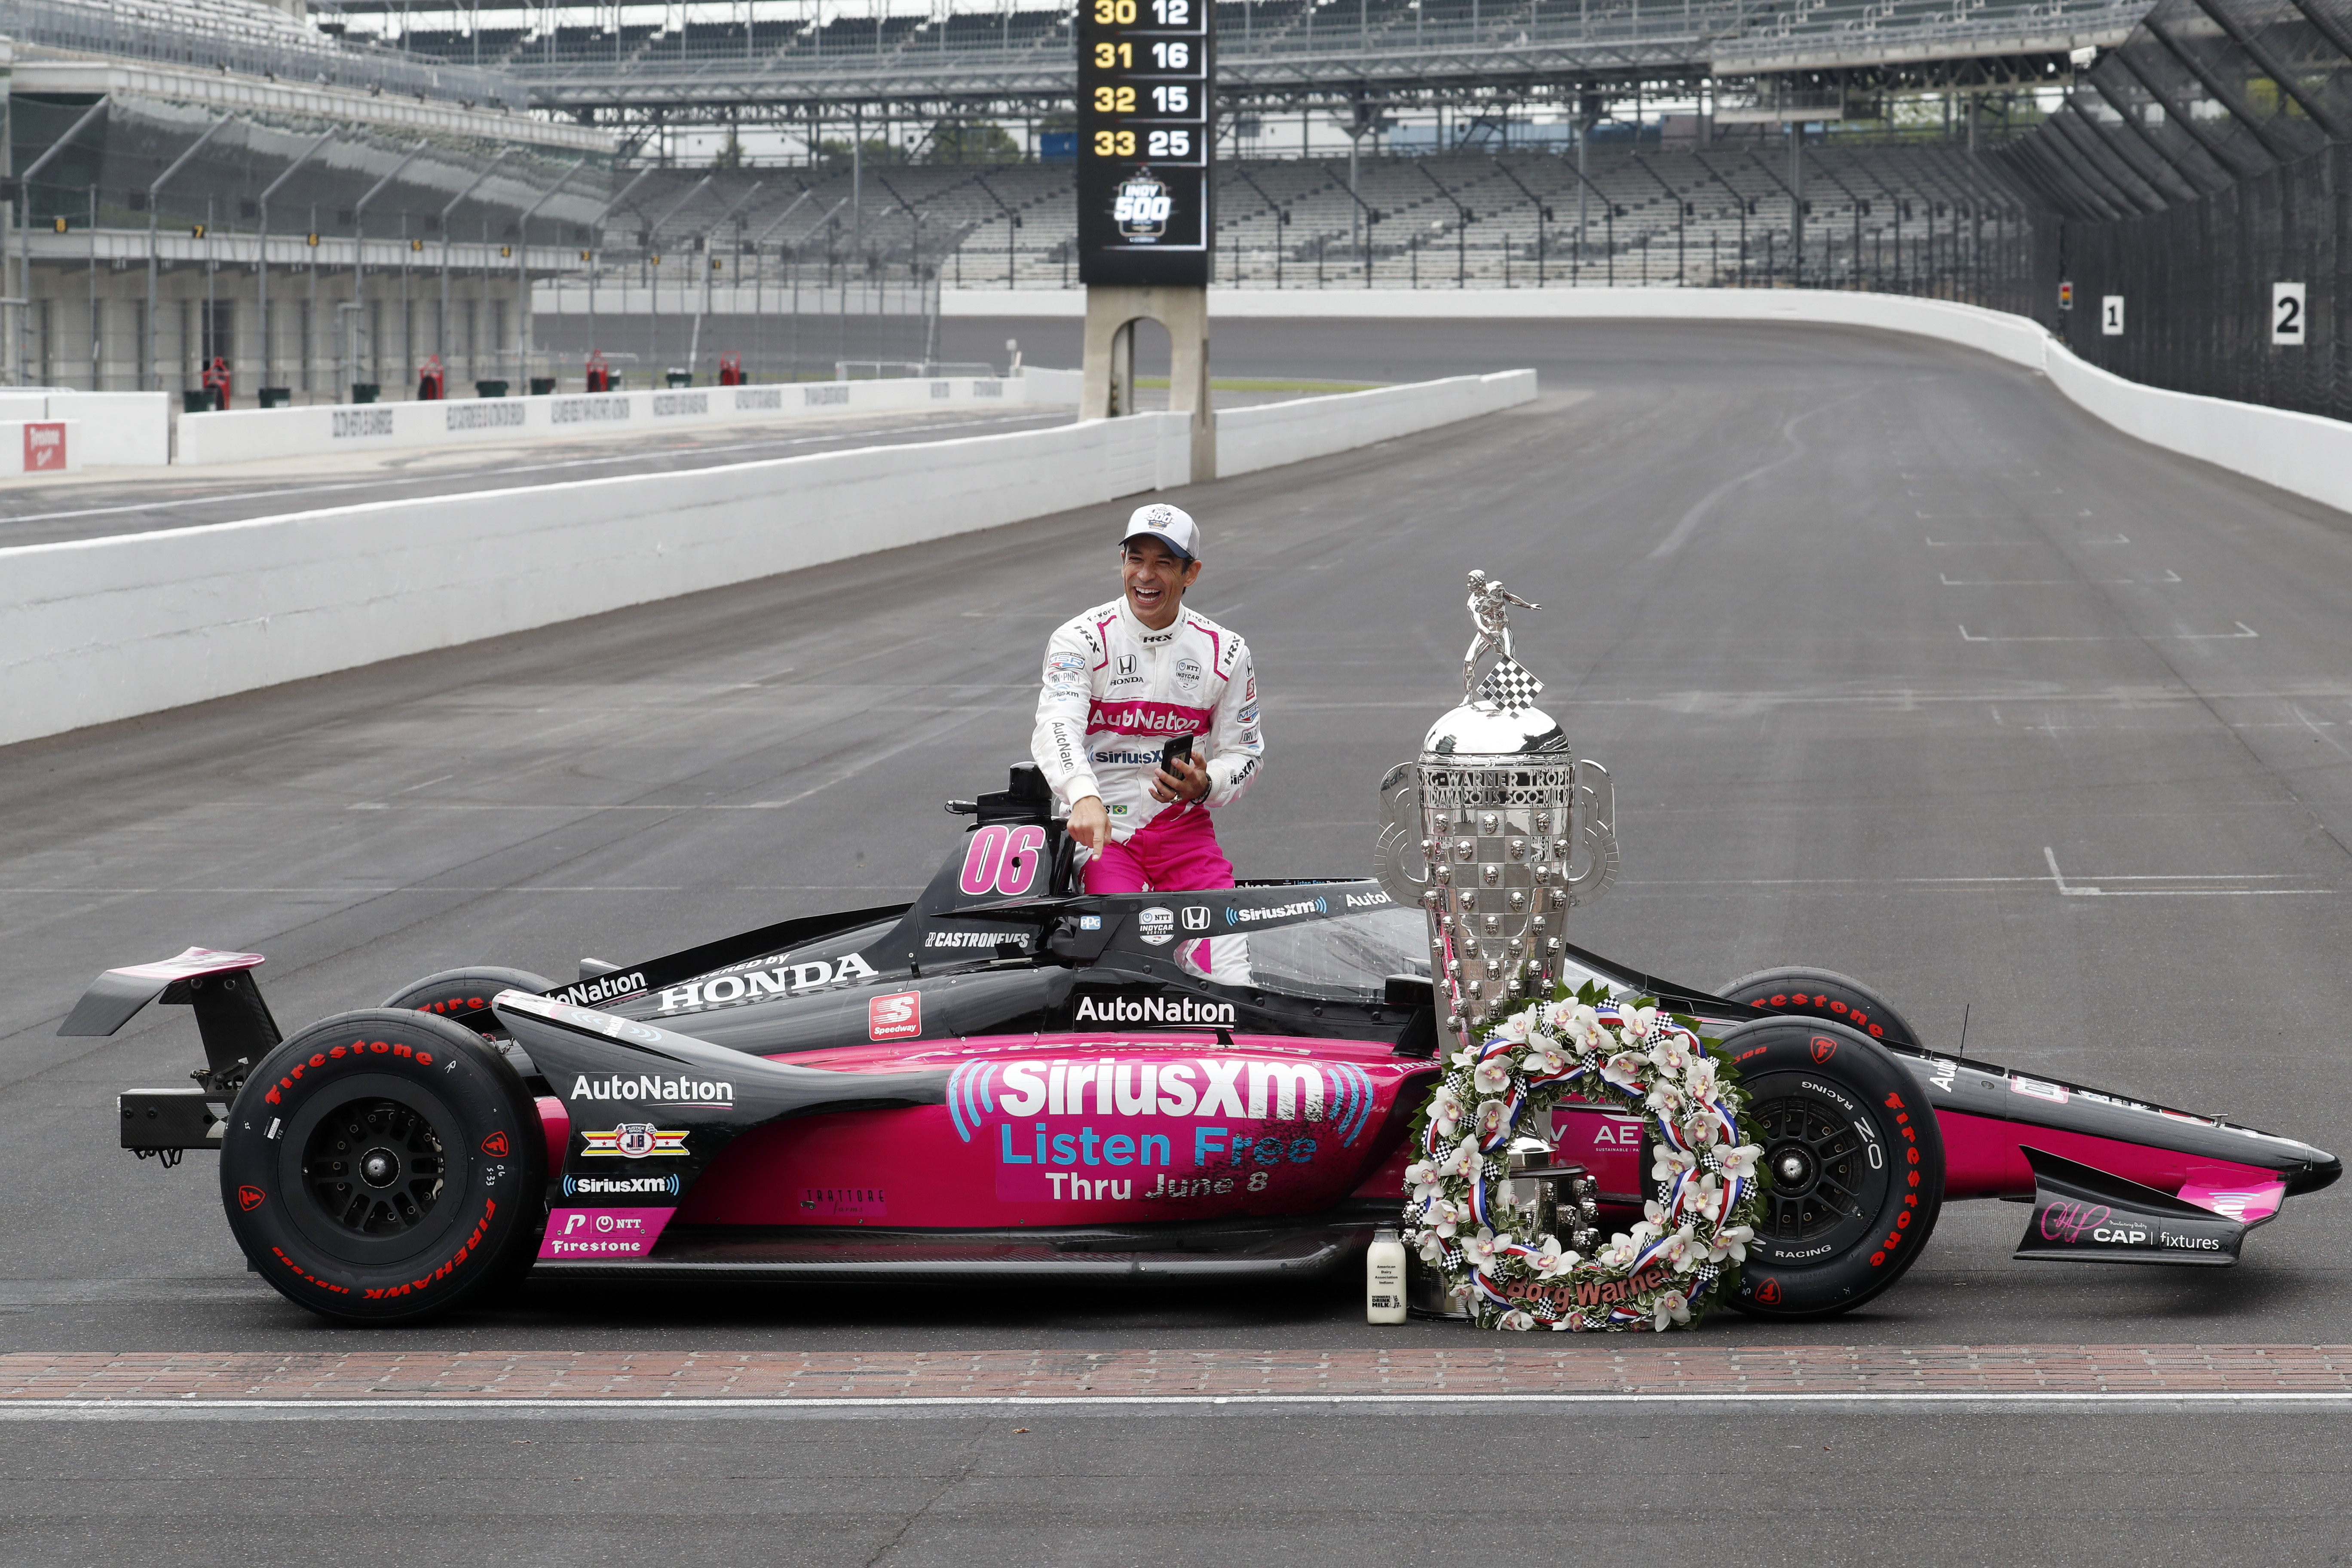 AUTO: MAY 31 INDYCAR - The 105th Indianapolis 500 Victory Celebration